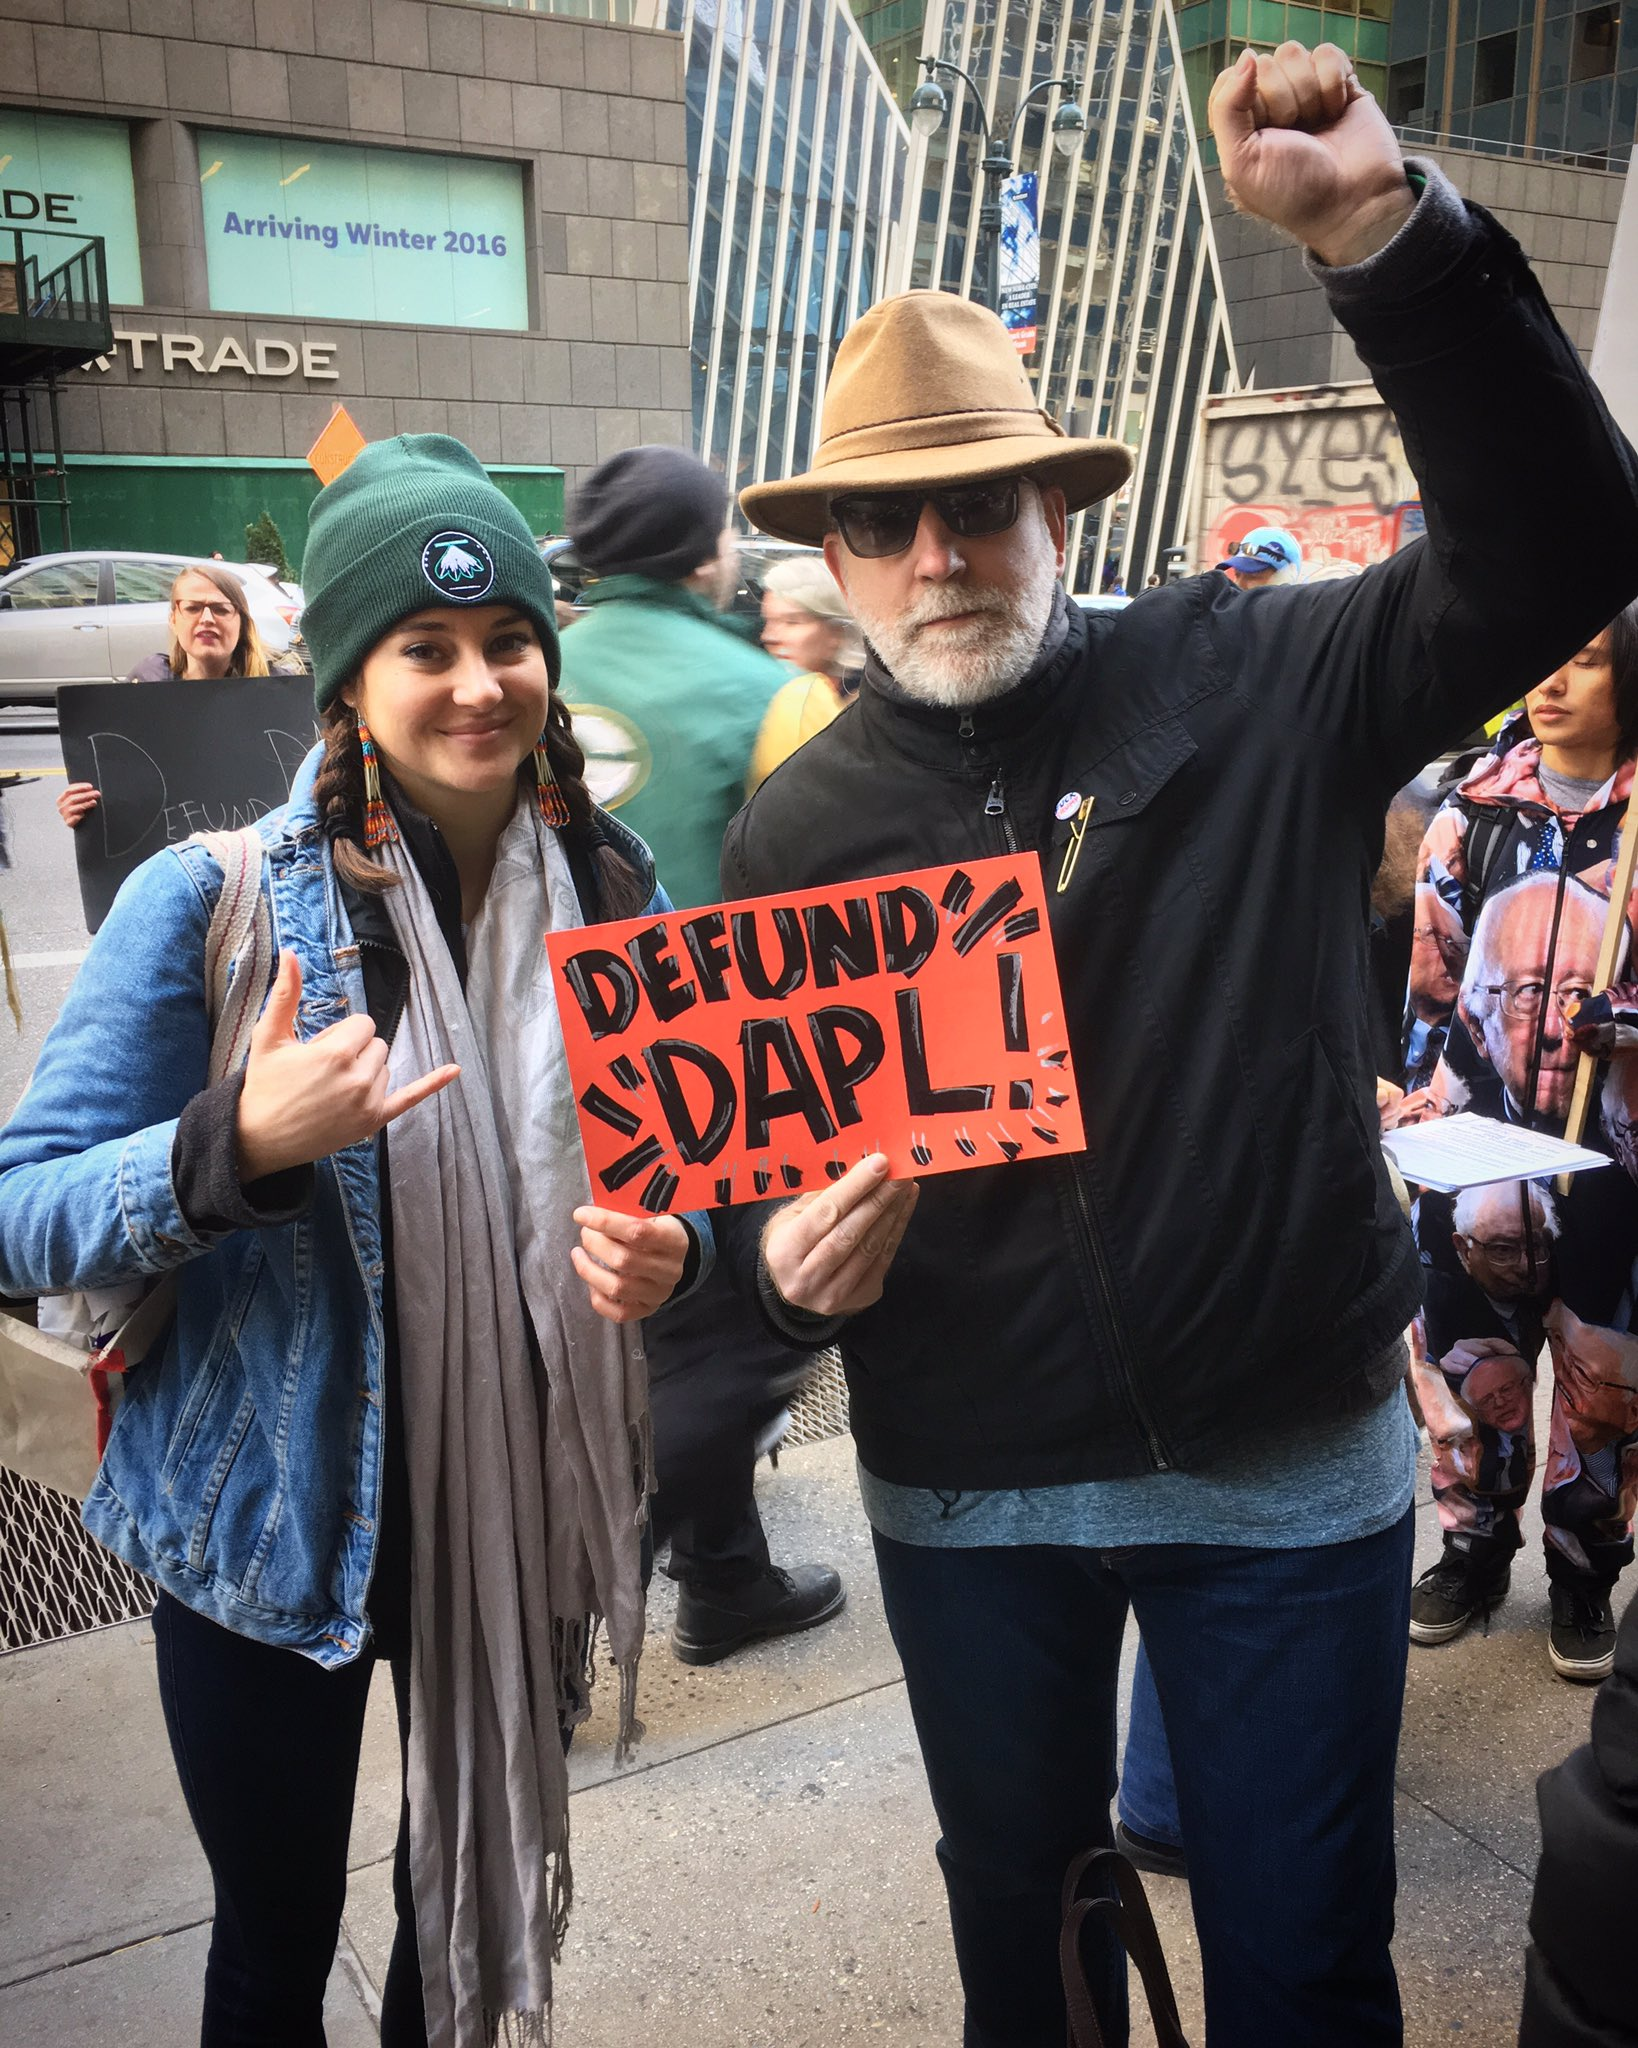 #DeFundDAPL protest outside #WellsFargo HQ in Manhattan w/ @shailenewoodley. #DivestfromDAPL #NoDAPL #MniWiconi #WaterIsLife https://t.co/hqreH2K5nm